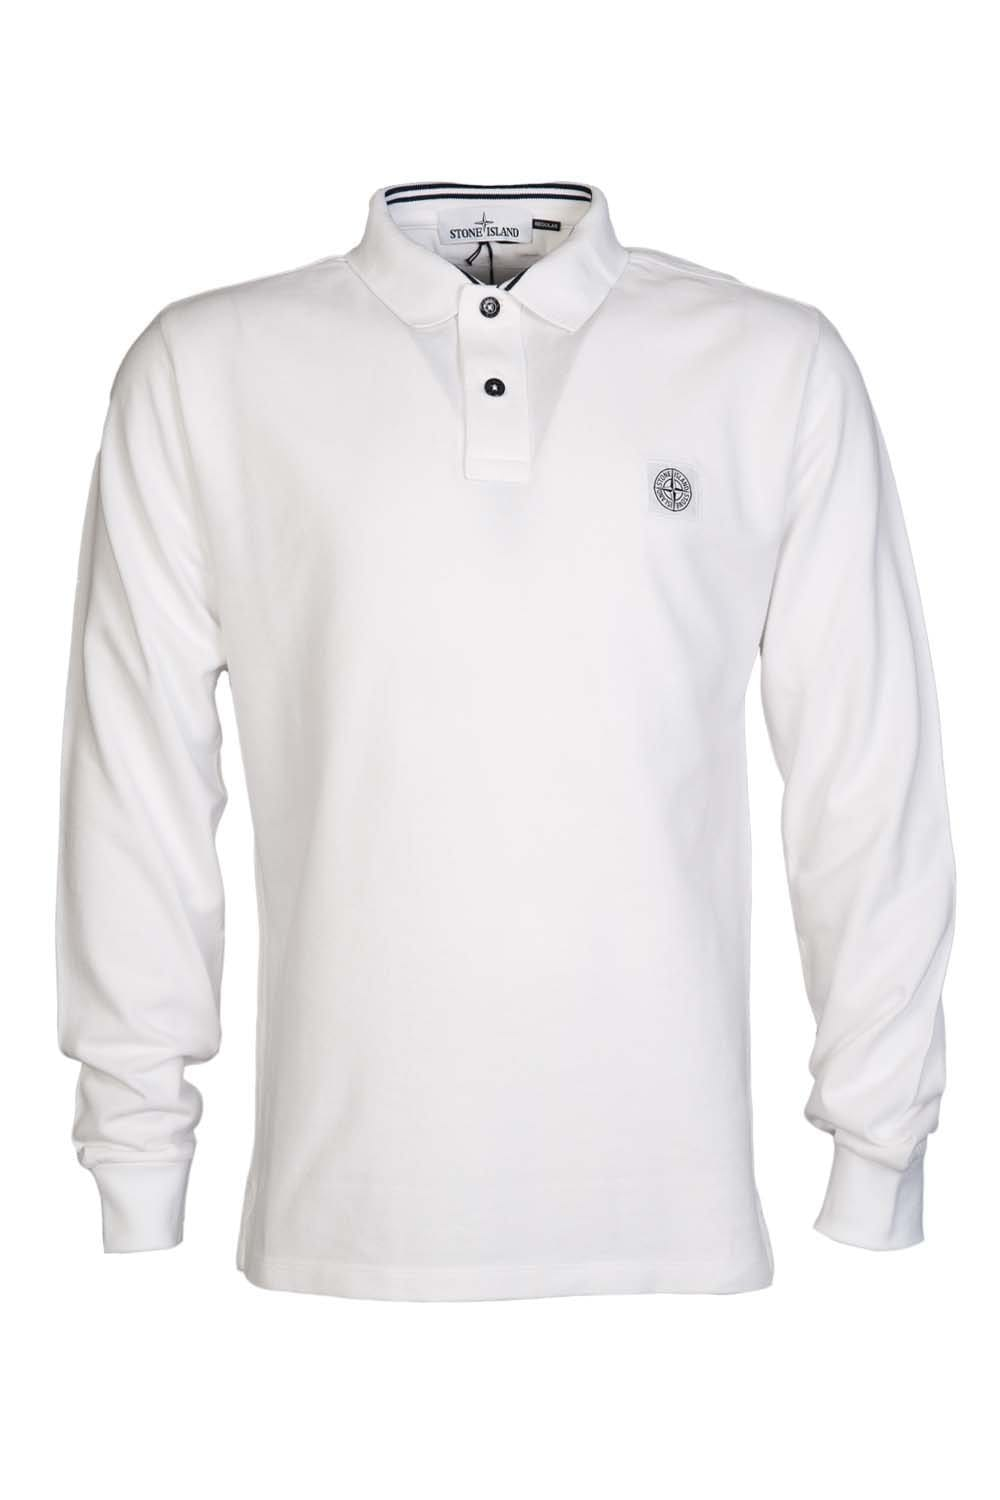 Stone Island Long Sleeve Polo Shirt In Black White And